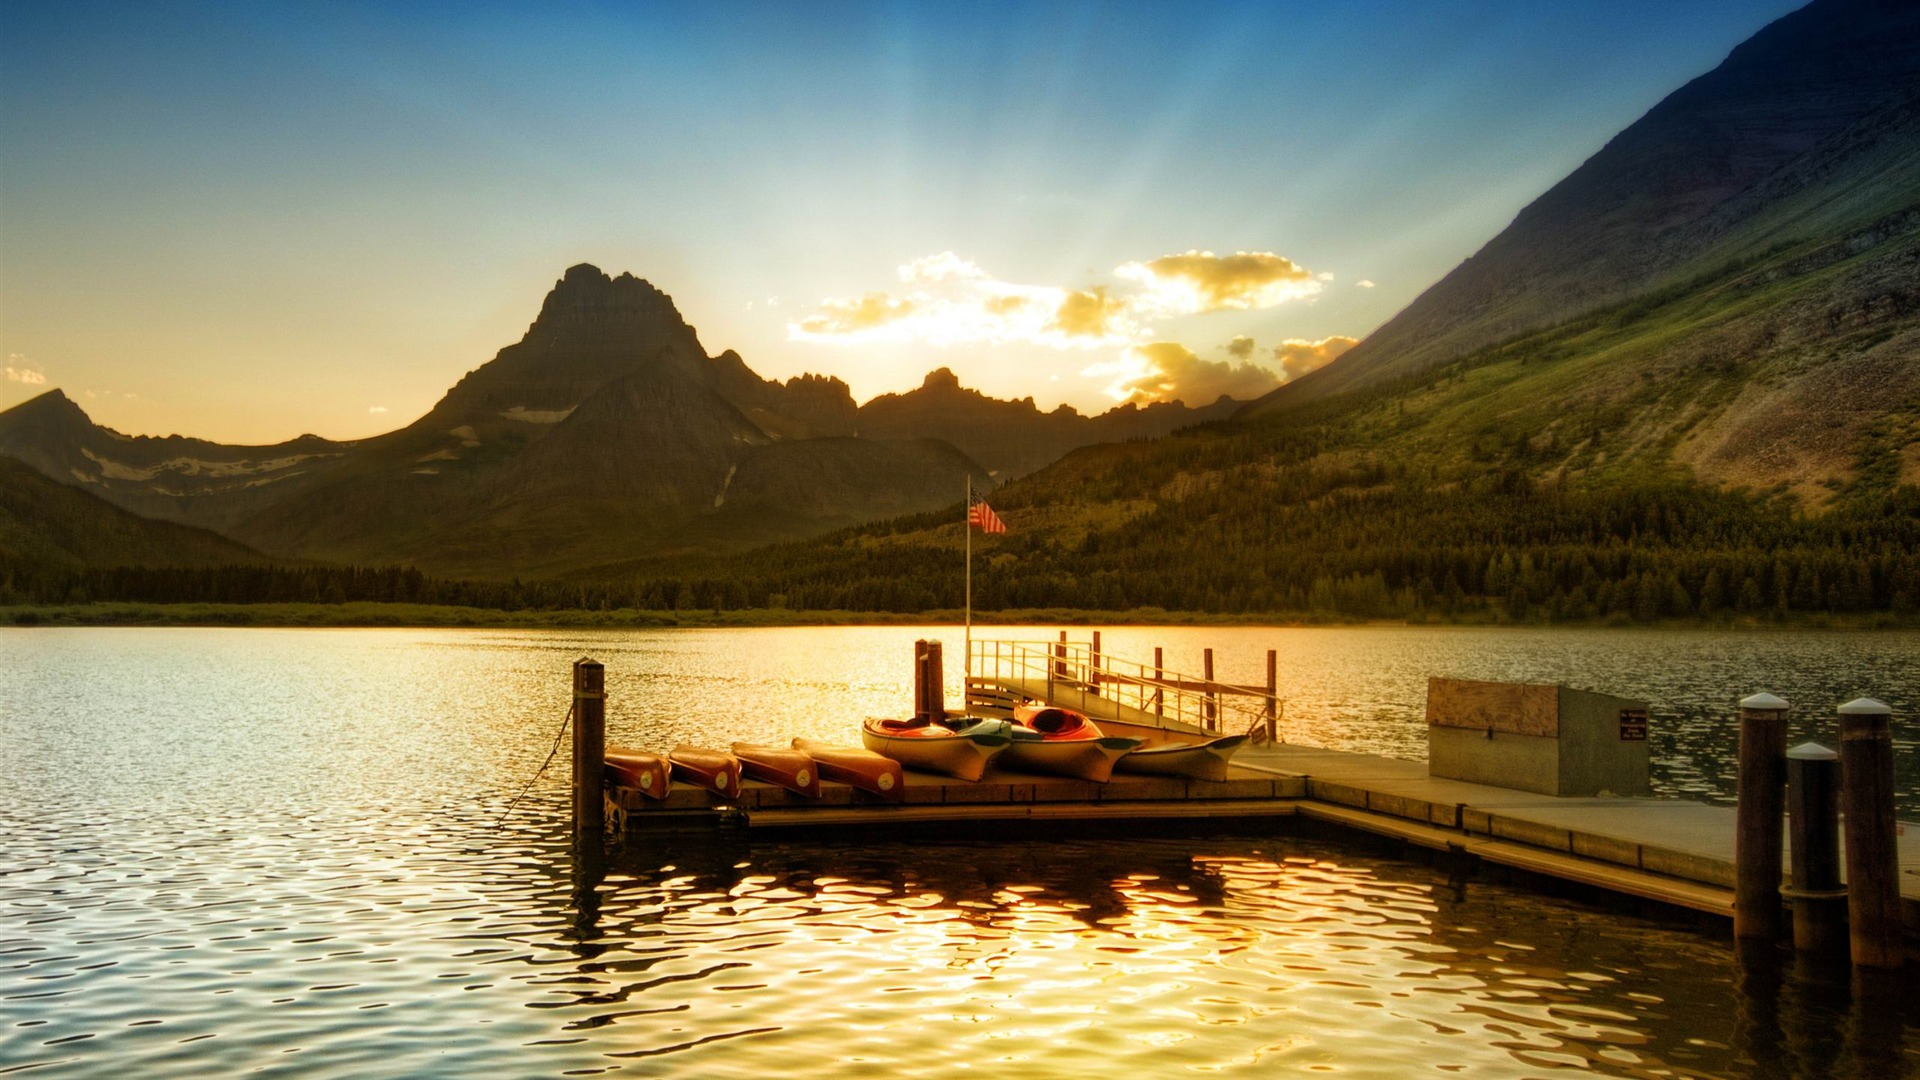 Sunset At Glacier National Park Lakeside Scenery Hd